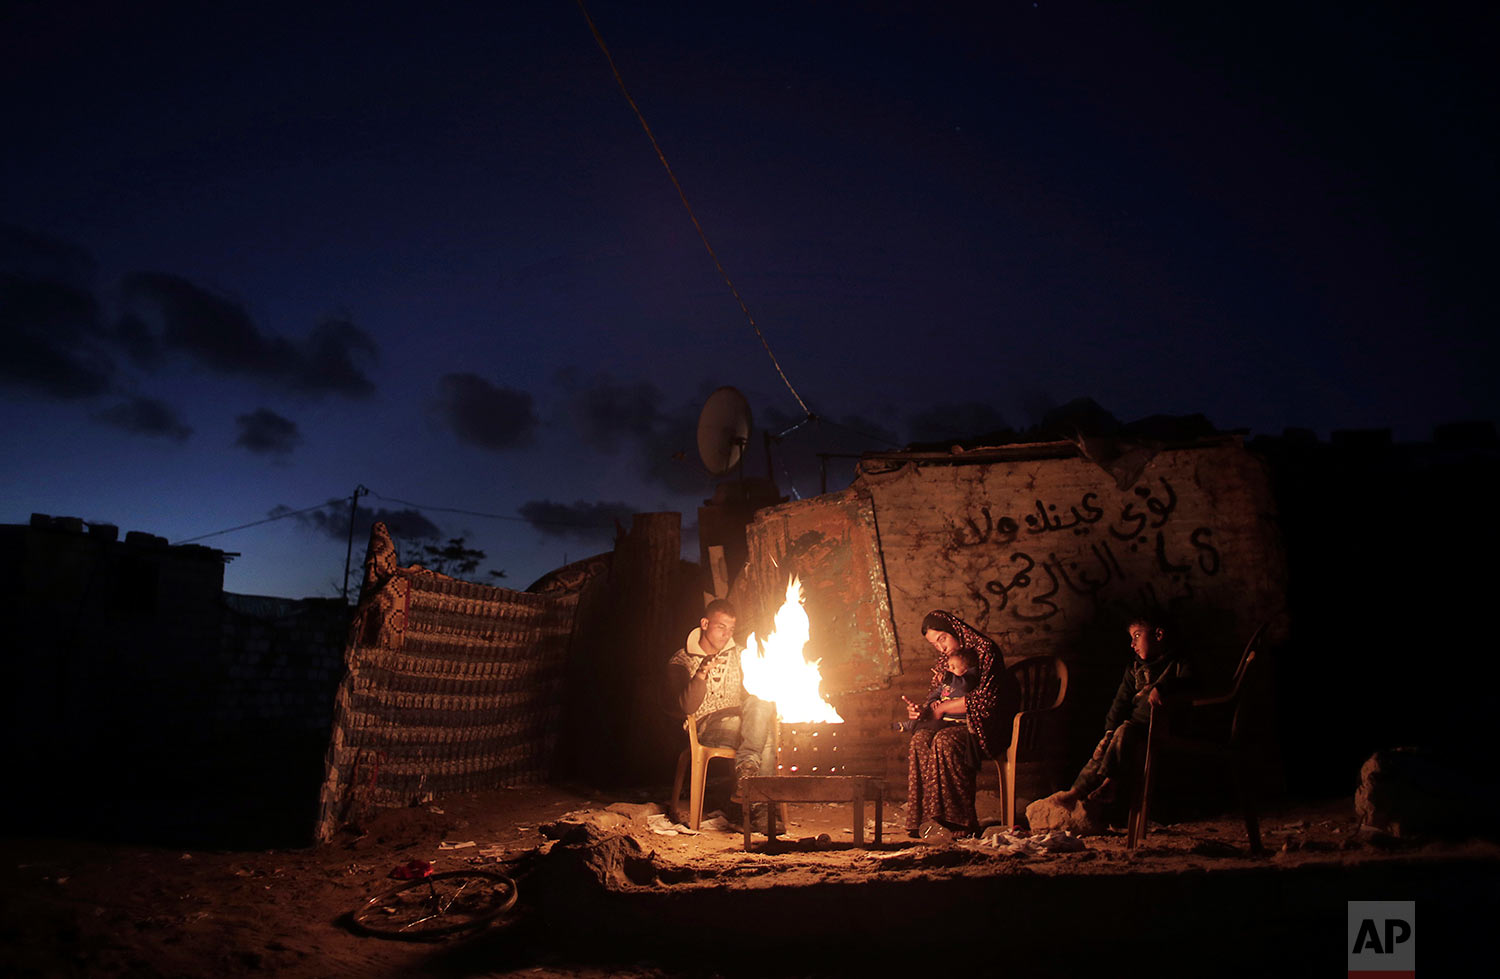 In this Jan. 15, 2017 photo, a Palestinian family warm themselves with a fire outside their makeshift house during a power cut in a poor neighborhood in Khan Younis, the southern Gaza Strip. (AP Photo/Khalil Hamra)